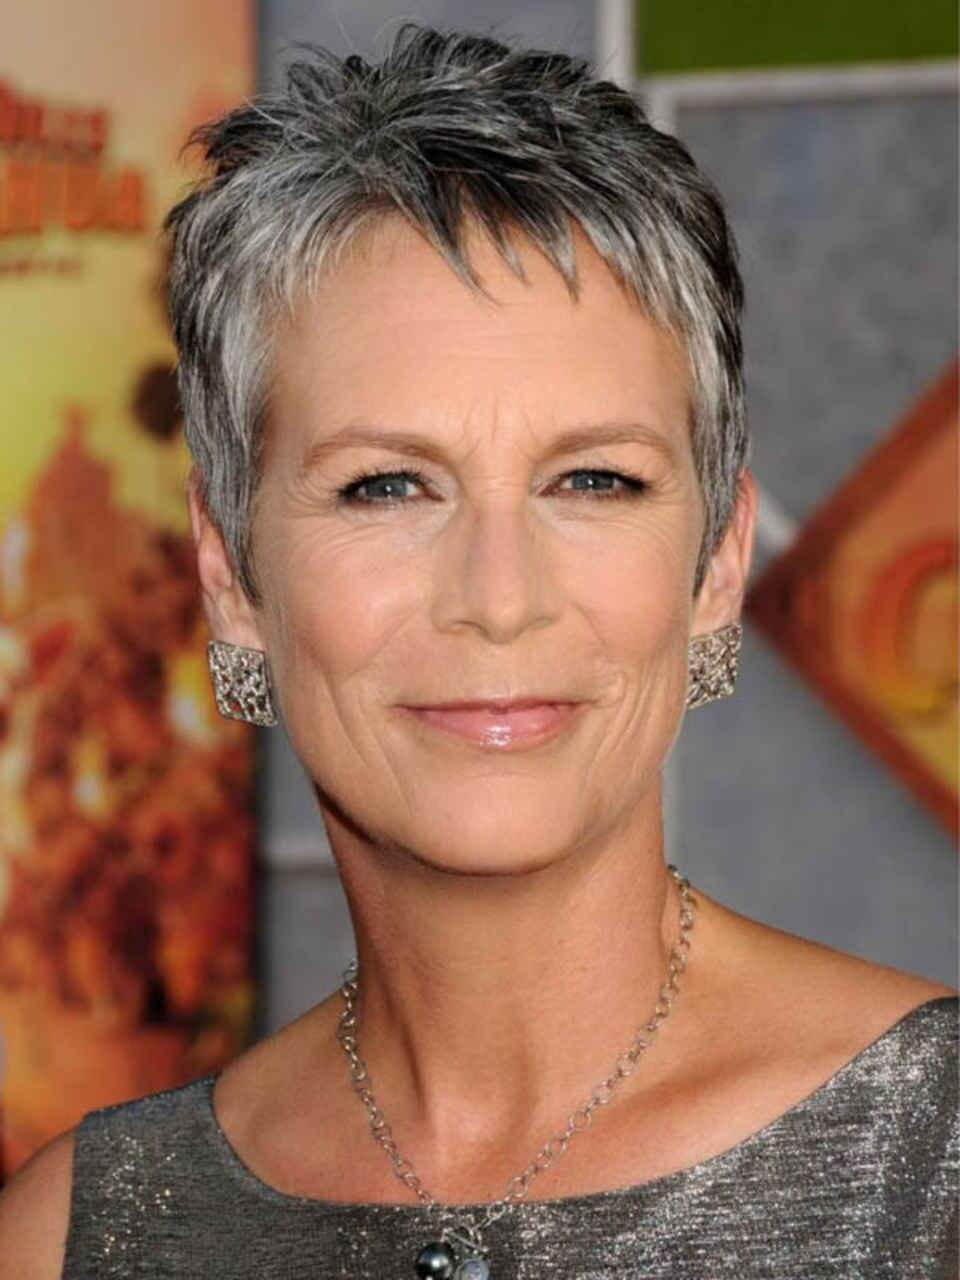 Edgy Hairstyles for Women Over 50